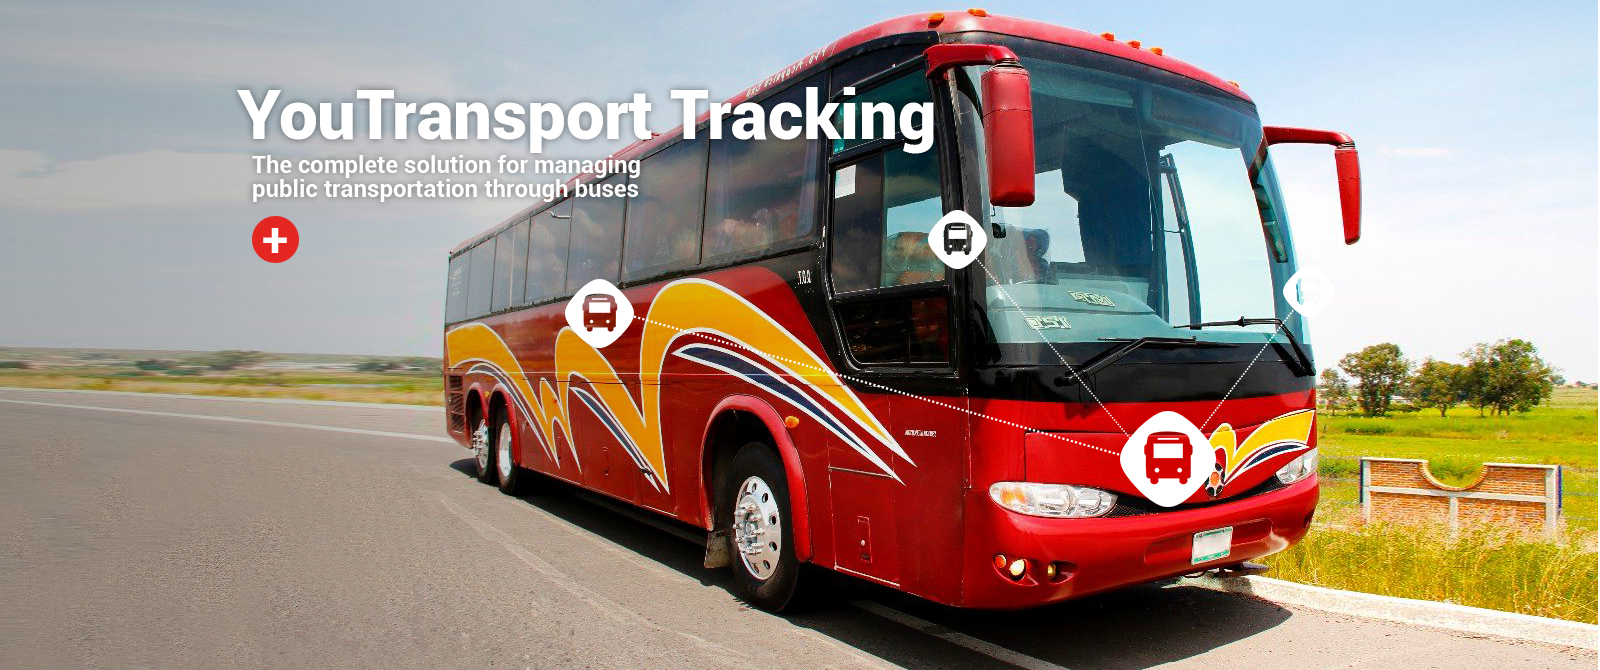 you_transport_tracking